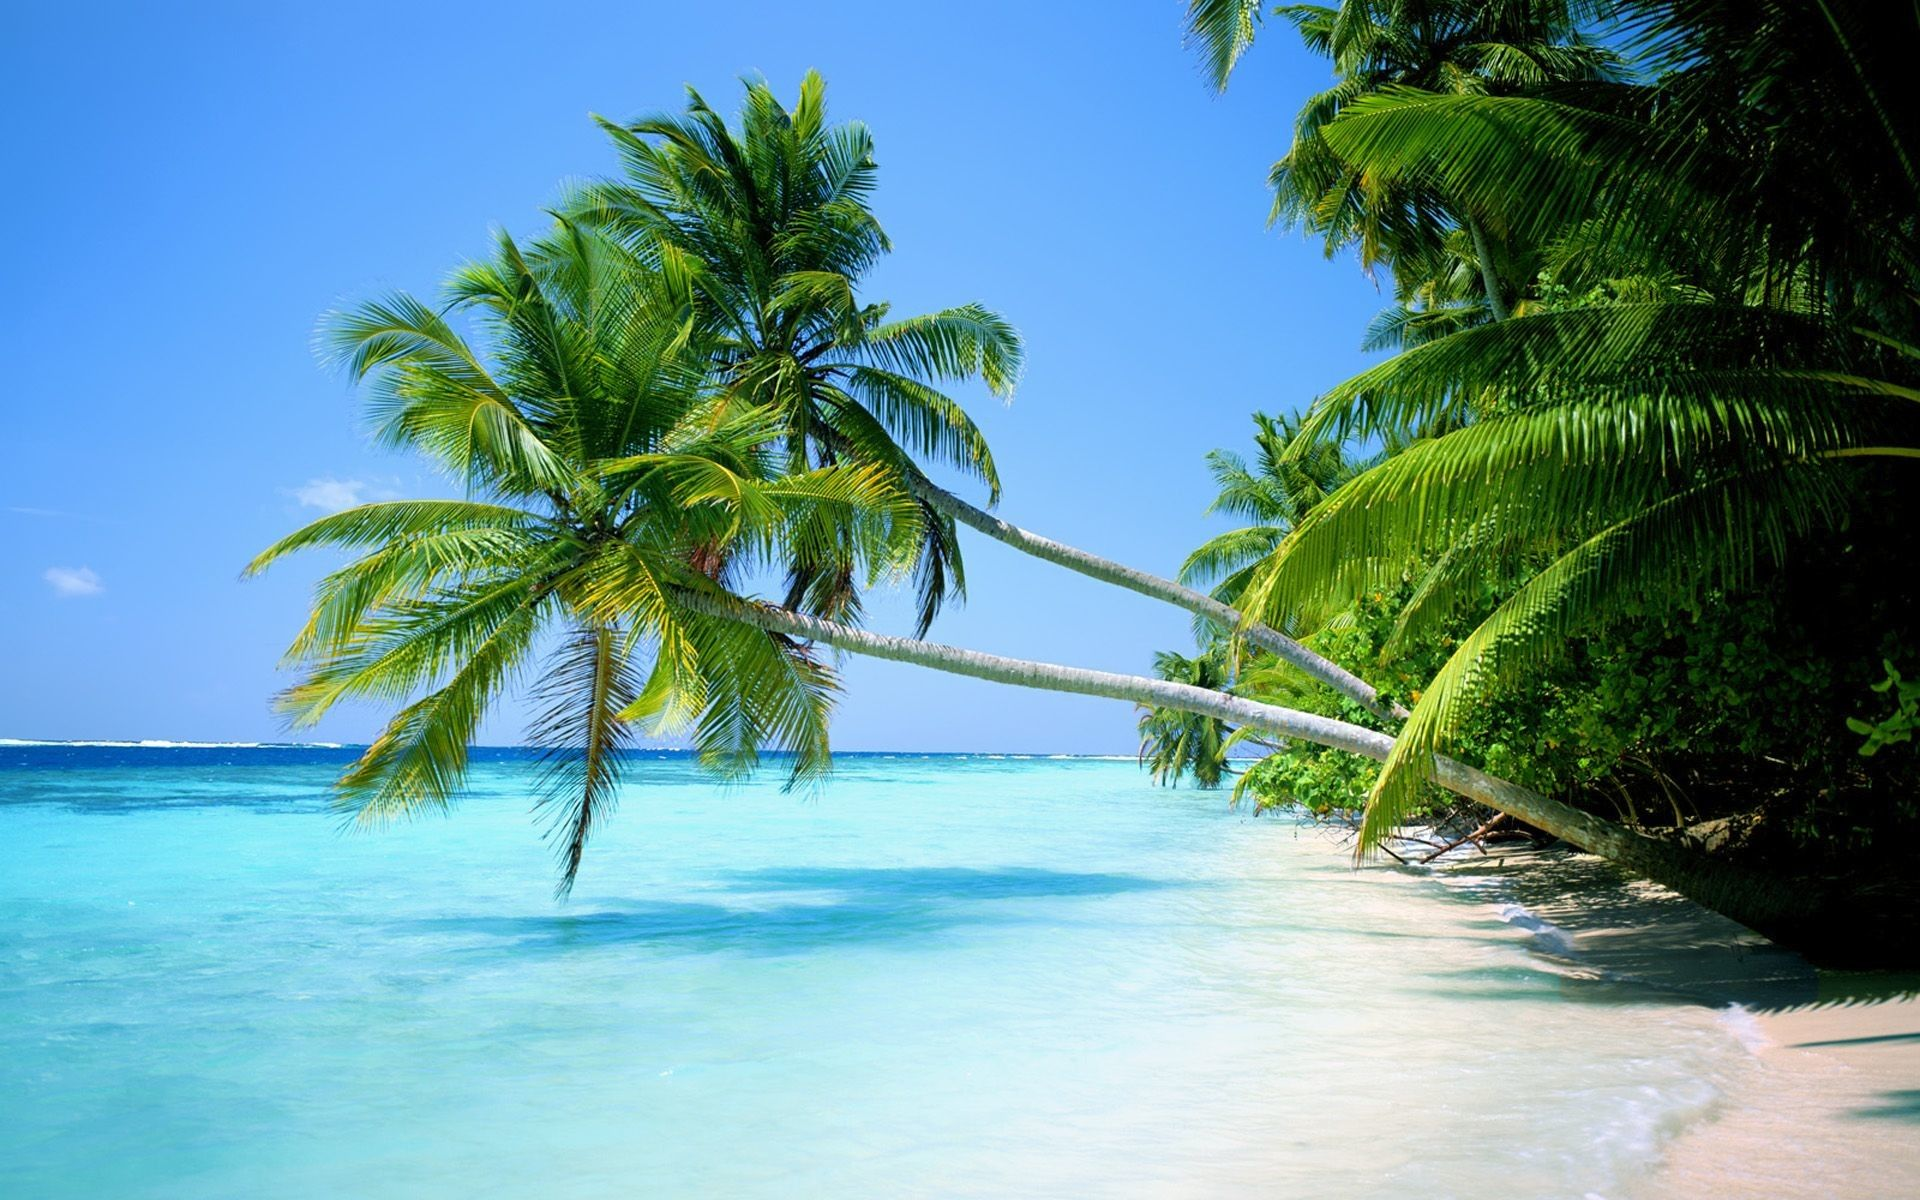 Tropical Island Wallpapers Top Free Tropical Island Backgrounds Wallpaperaccess